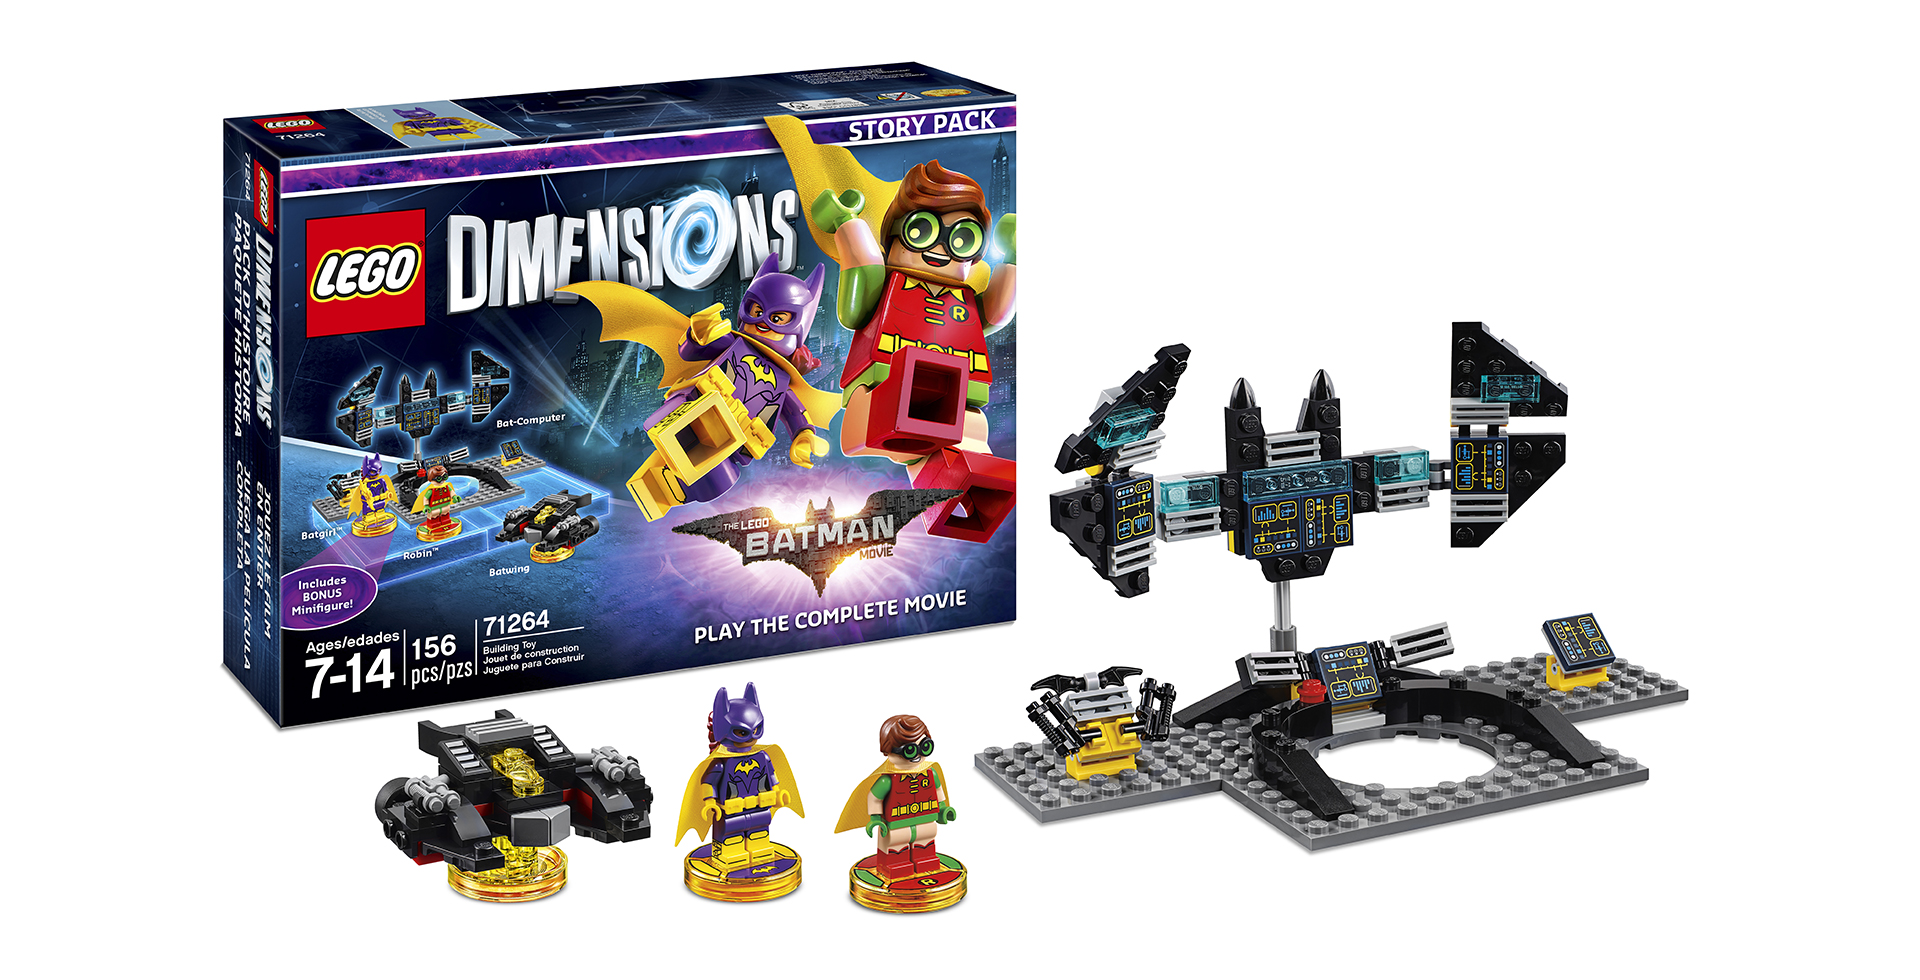 LEGO Dimensions - LEGO Batman Movie Story Pack